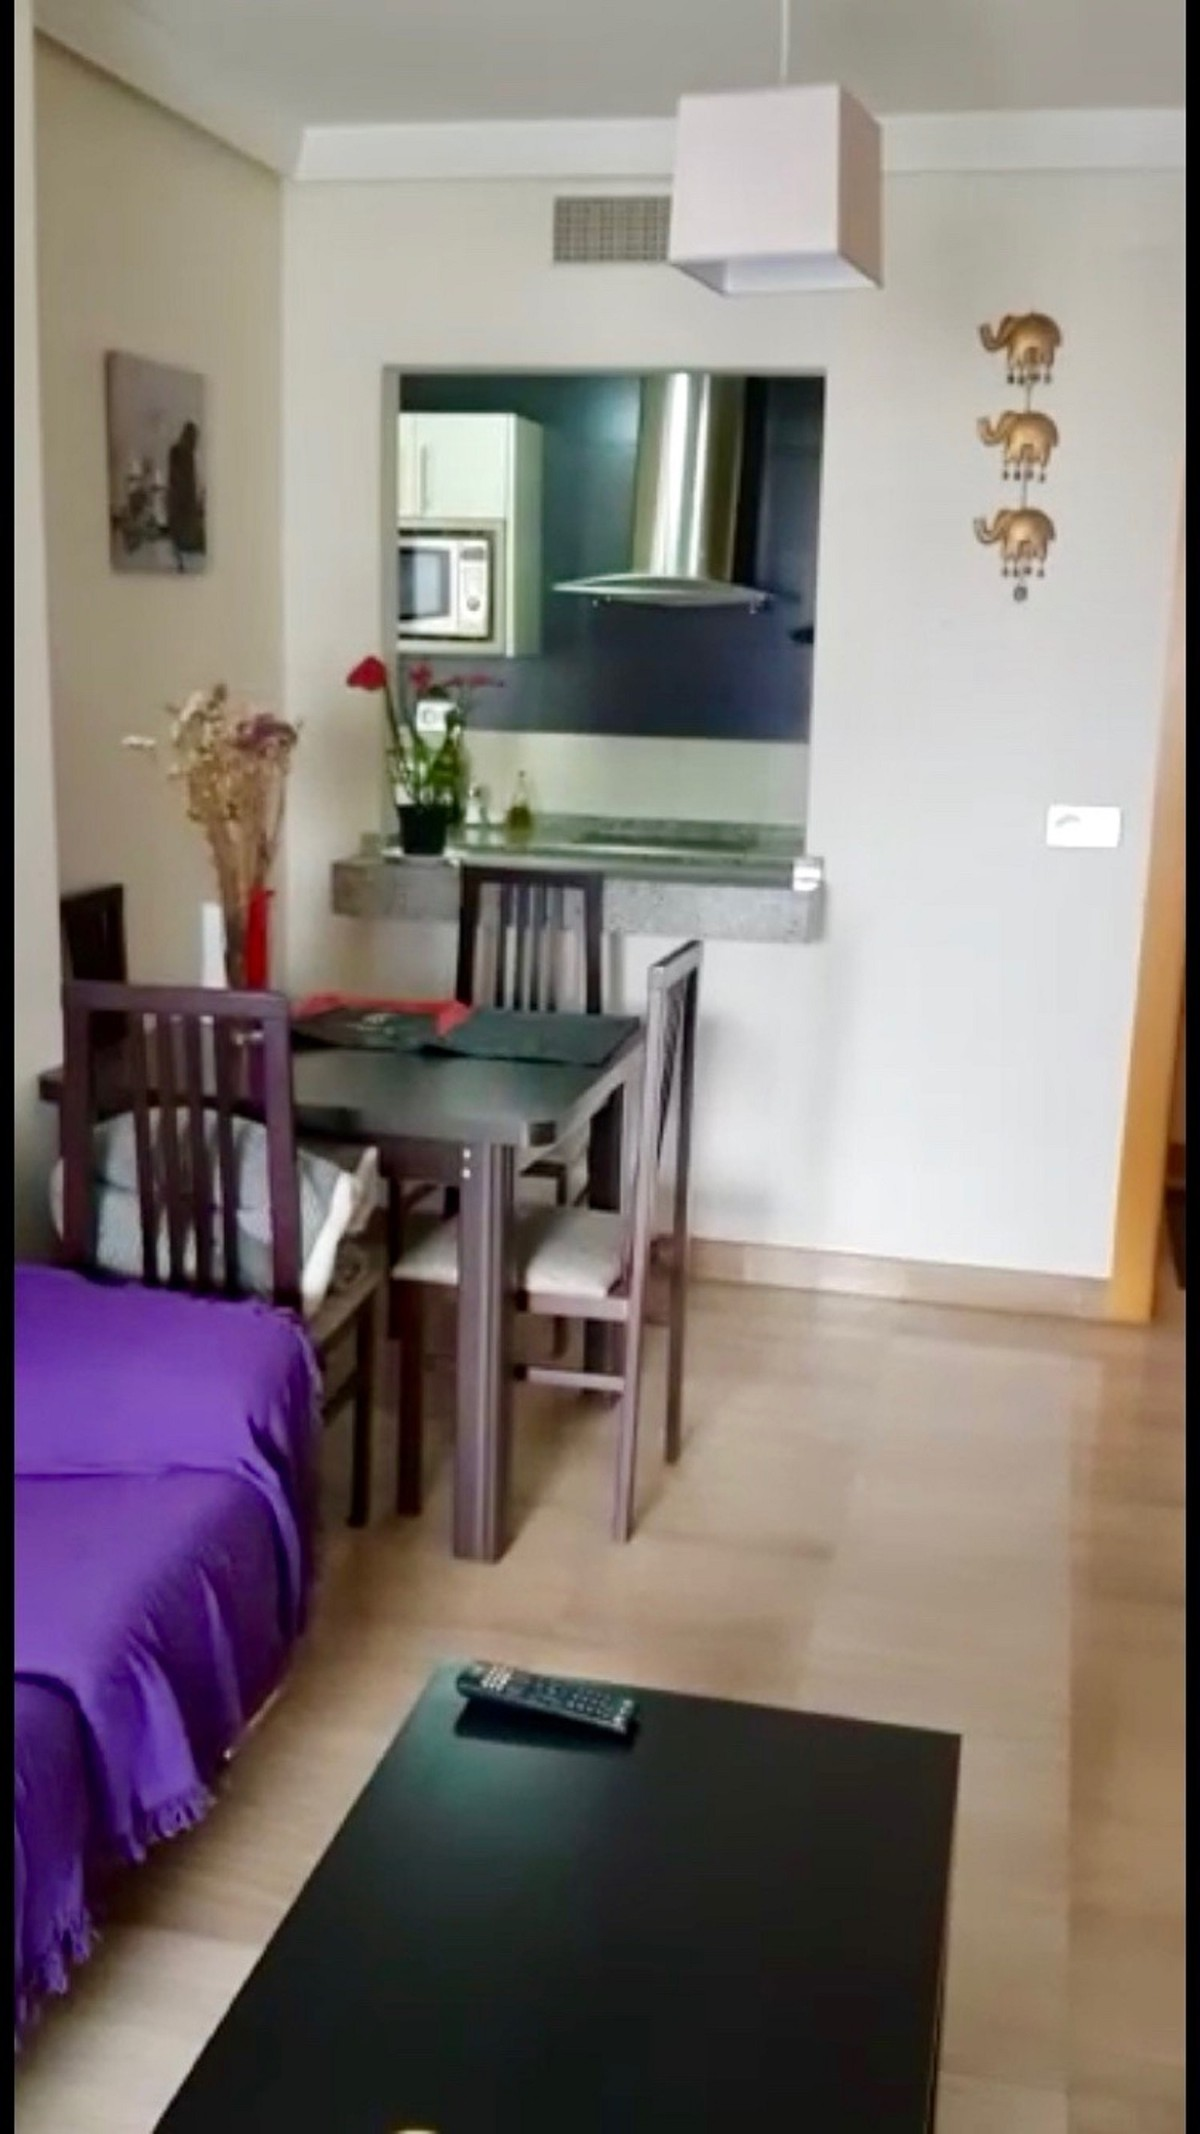 Apartment - Middle Floor in Pacífico